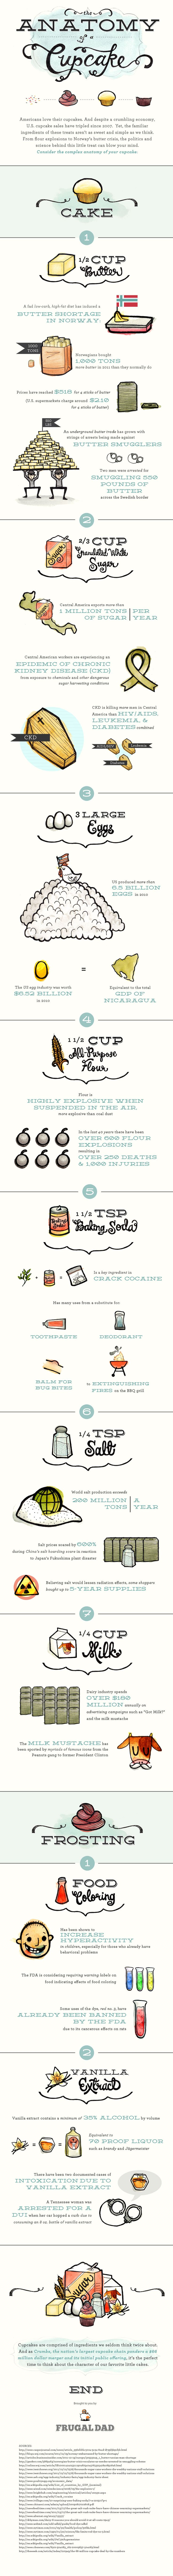 The Anatomy Of A Cupcake [INFOGRAPHIC]